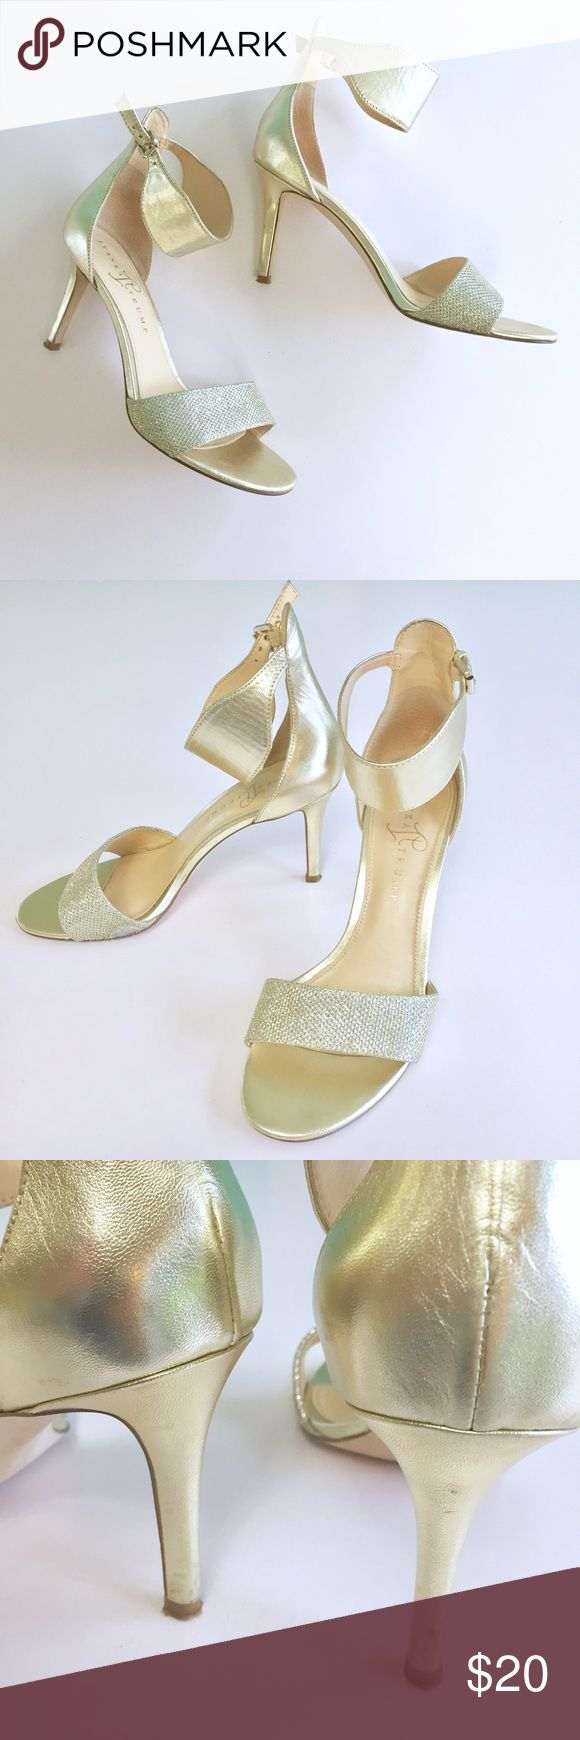 Ivanka Trump Gold Heels Beautiful Ivanka Trump golden heels, these have been well loved but have lots of life left in them. There is a flaw on the outside bottom sides golden fabric has been worn off slightly,(see photos) Because of this I'm pricing these really low, so please don't lowball. Thank you 😊 Check out my closet, bundle and give me your offer! Ivanka Trump Shoes Heels